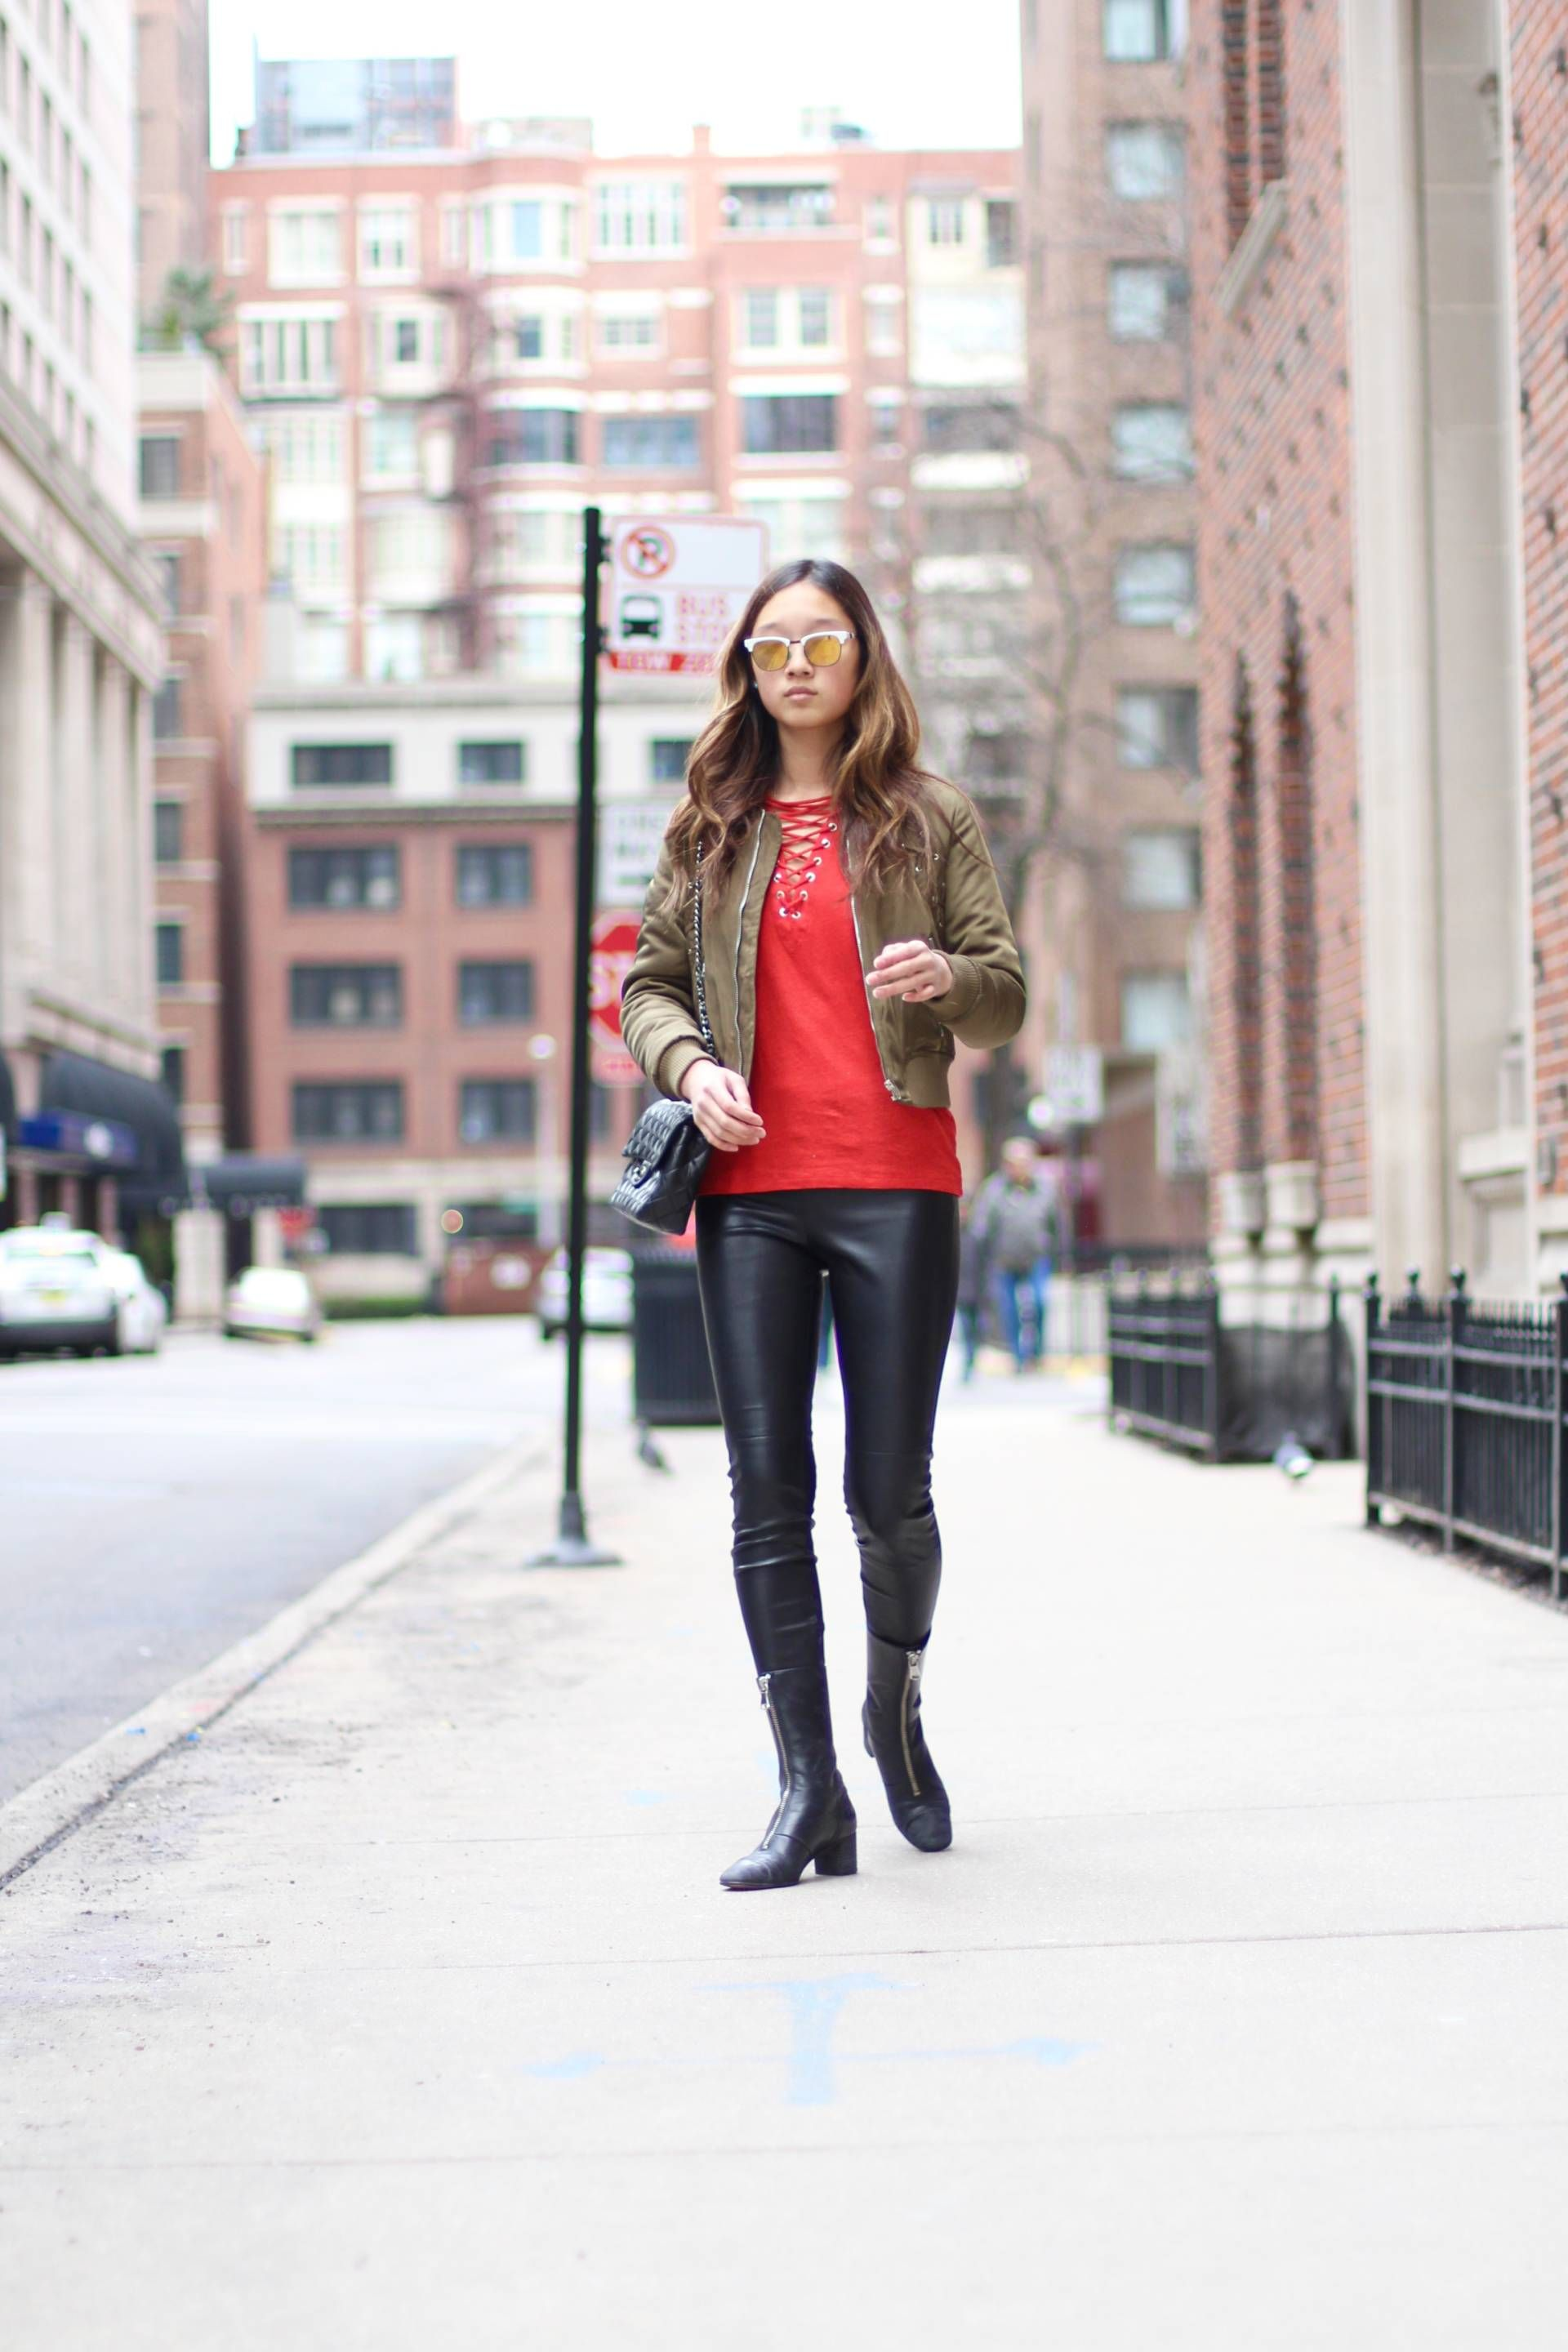 a371ca855df02 iro imis red jersey tee, LF green army bomber jacket, zara faux leather  pants, zara faux leather zipper booties, westward leaning vanguard  sunglasses, ...